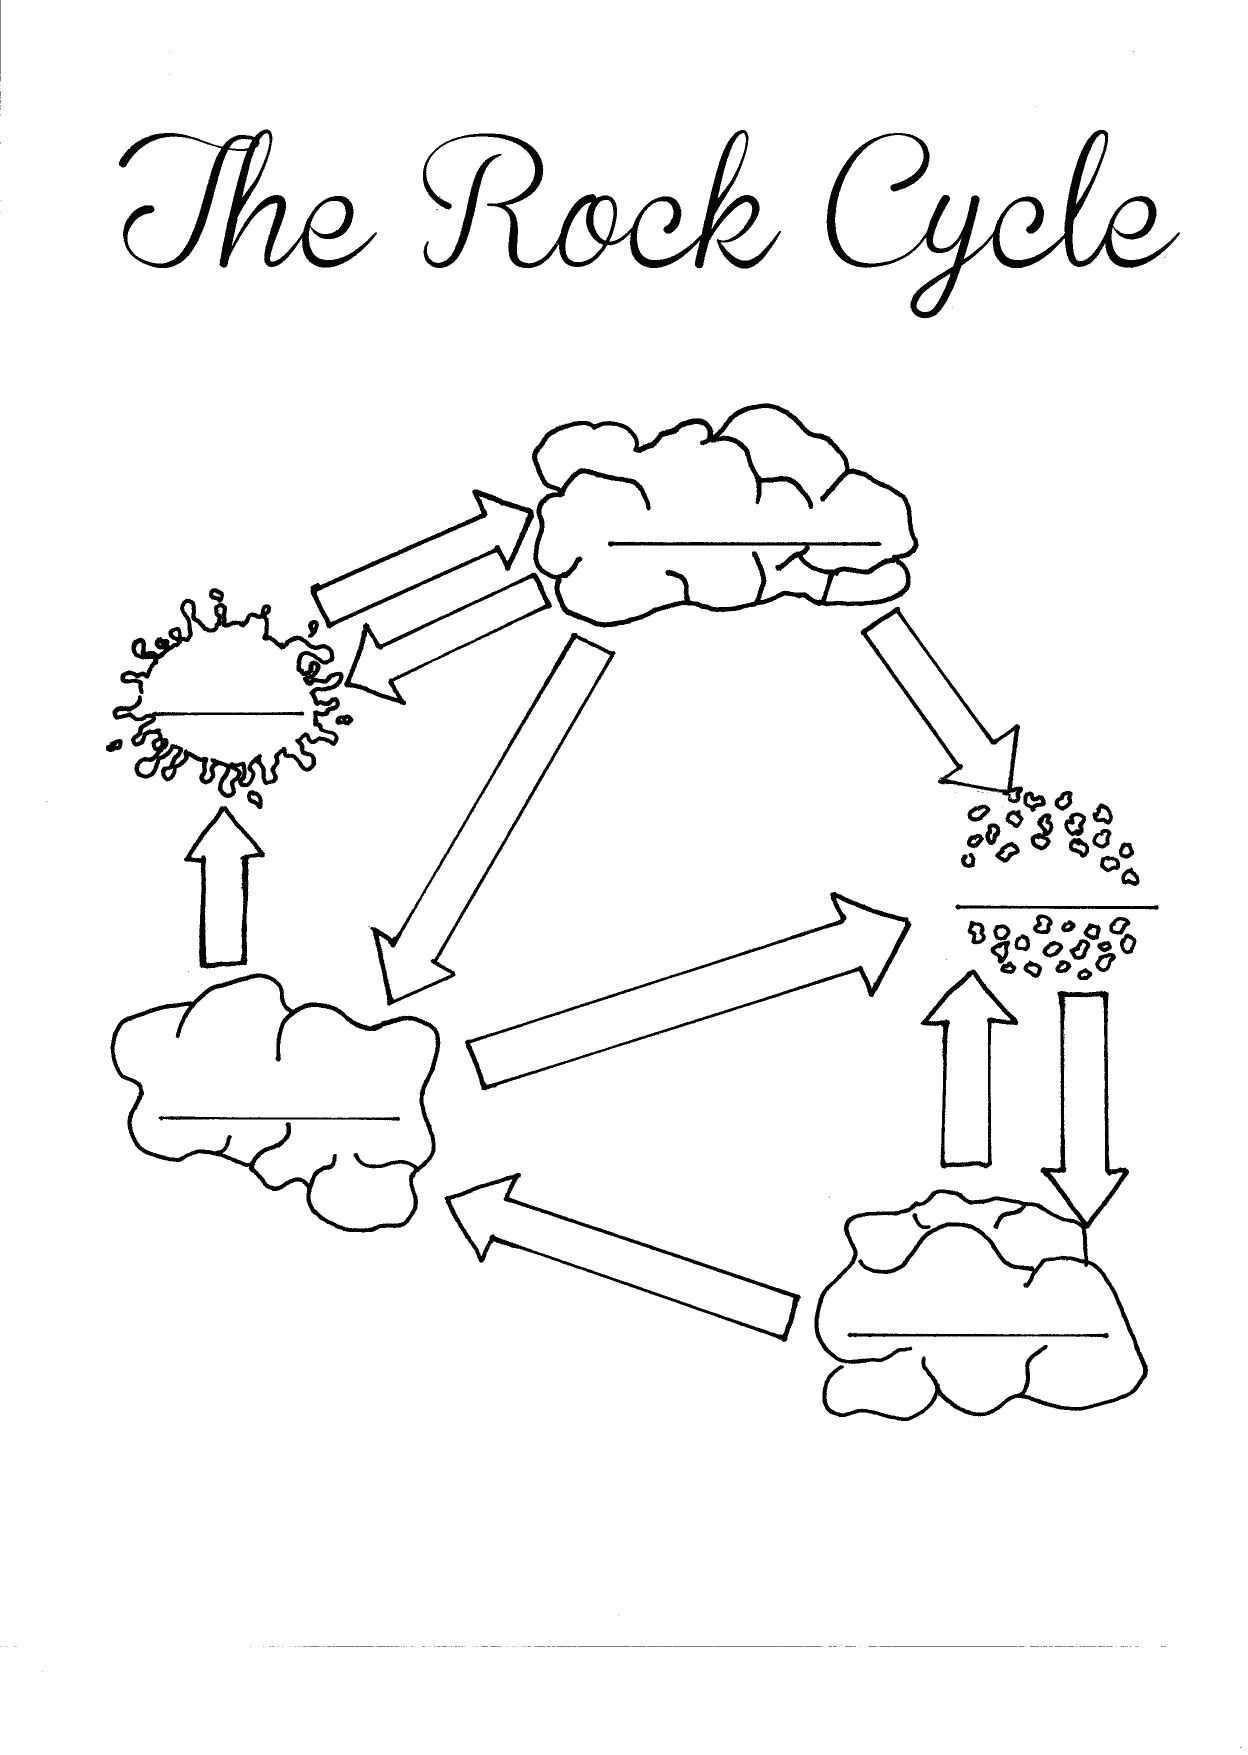 The Rock Cycle Diagram Fill In Blank Cat6 Wiring 568a Worksheet As You Talk About